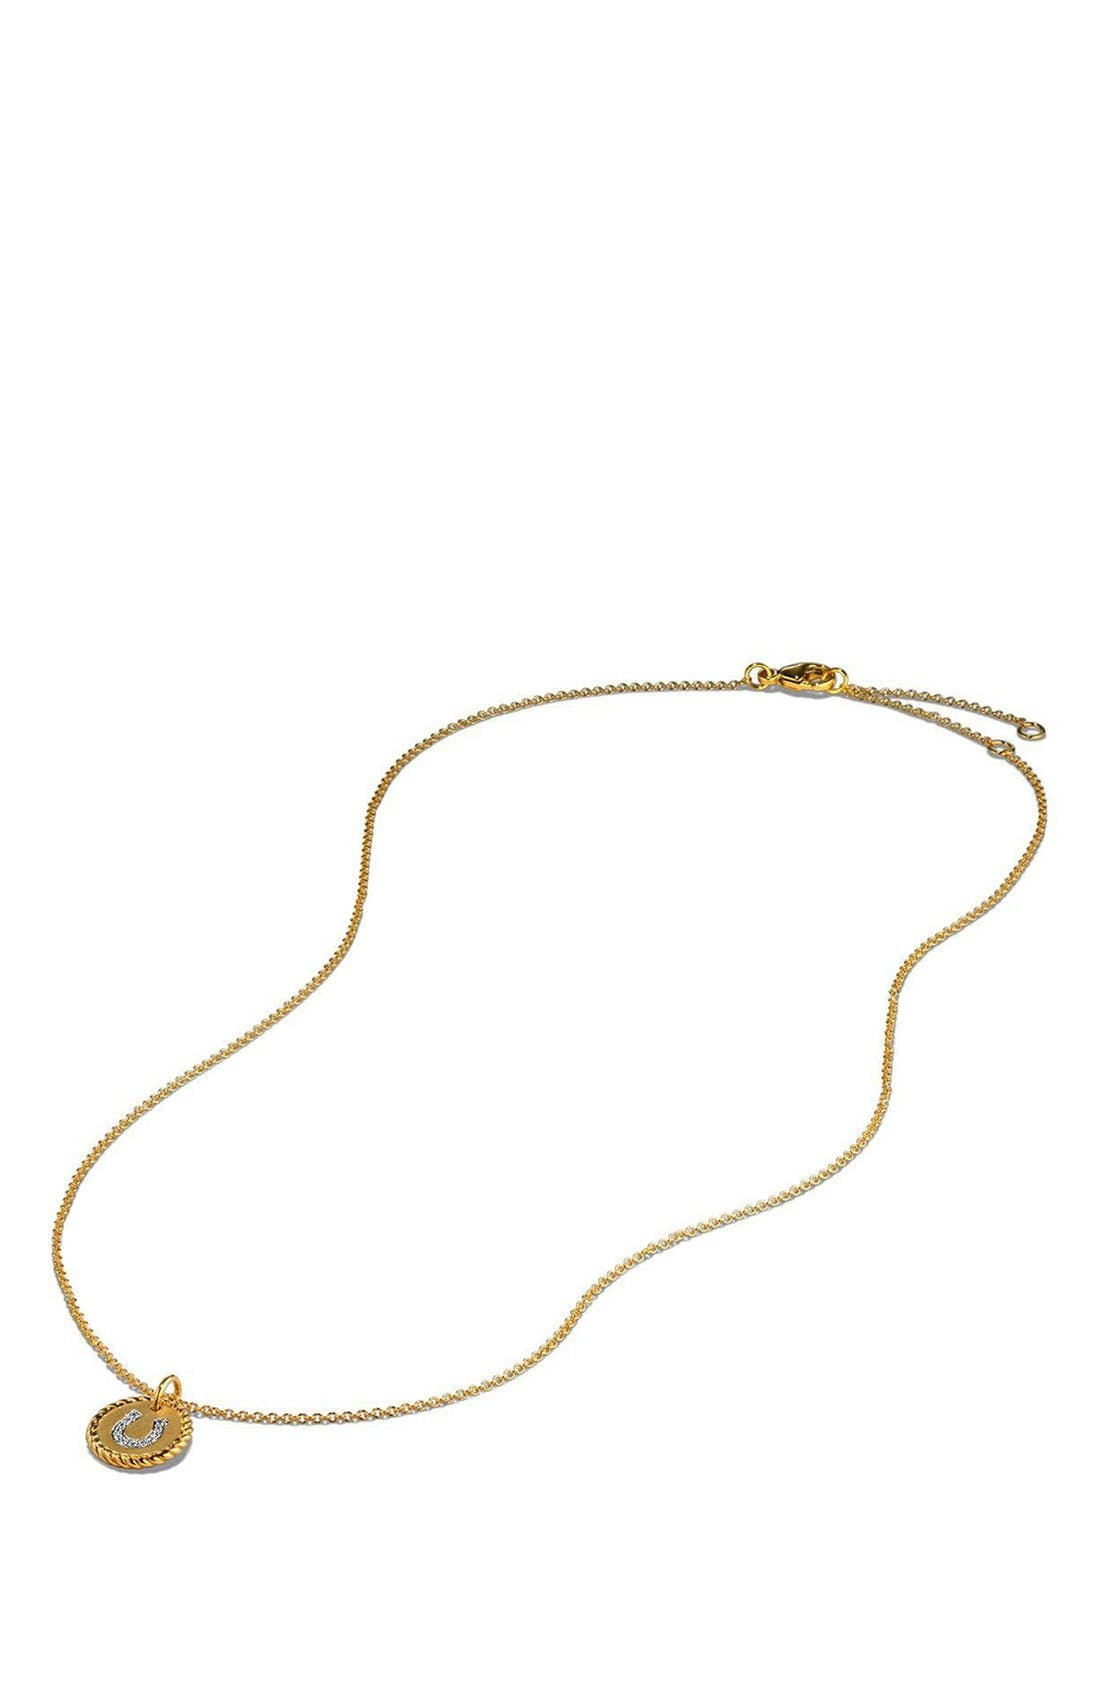 Alternate Image 3  - David Yurman 'Cable Collectibles' Horseshoe Charm Necklace with Diamonds in Gold